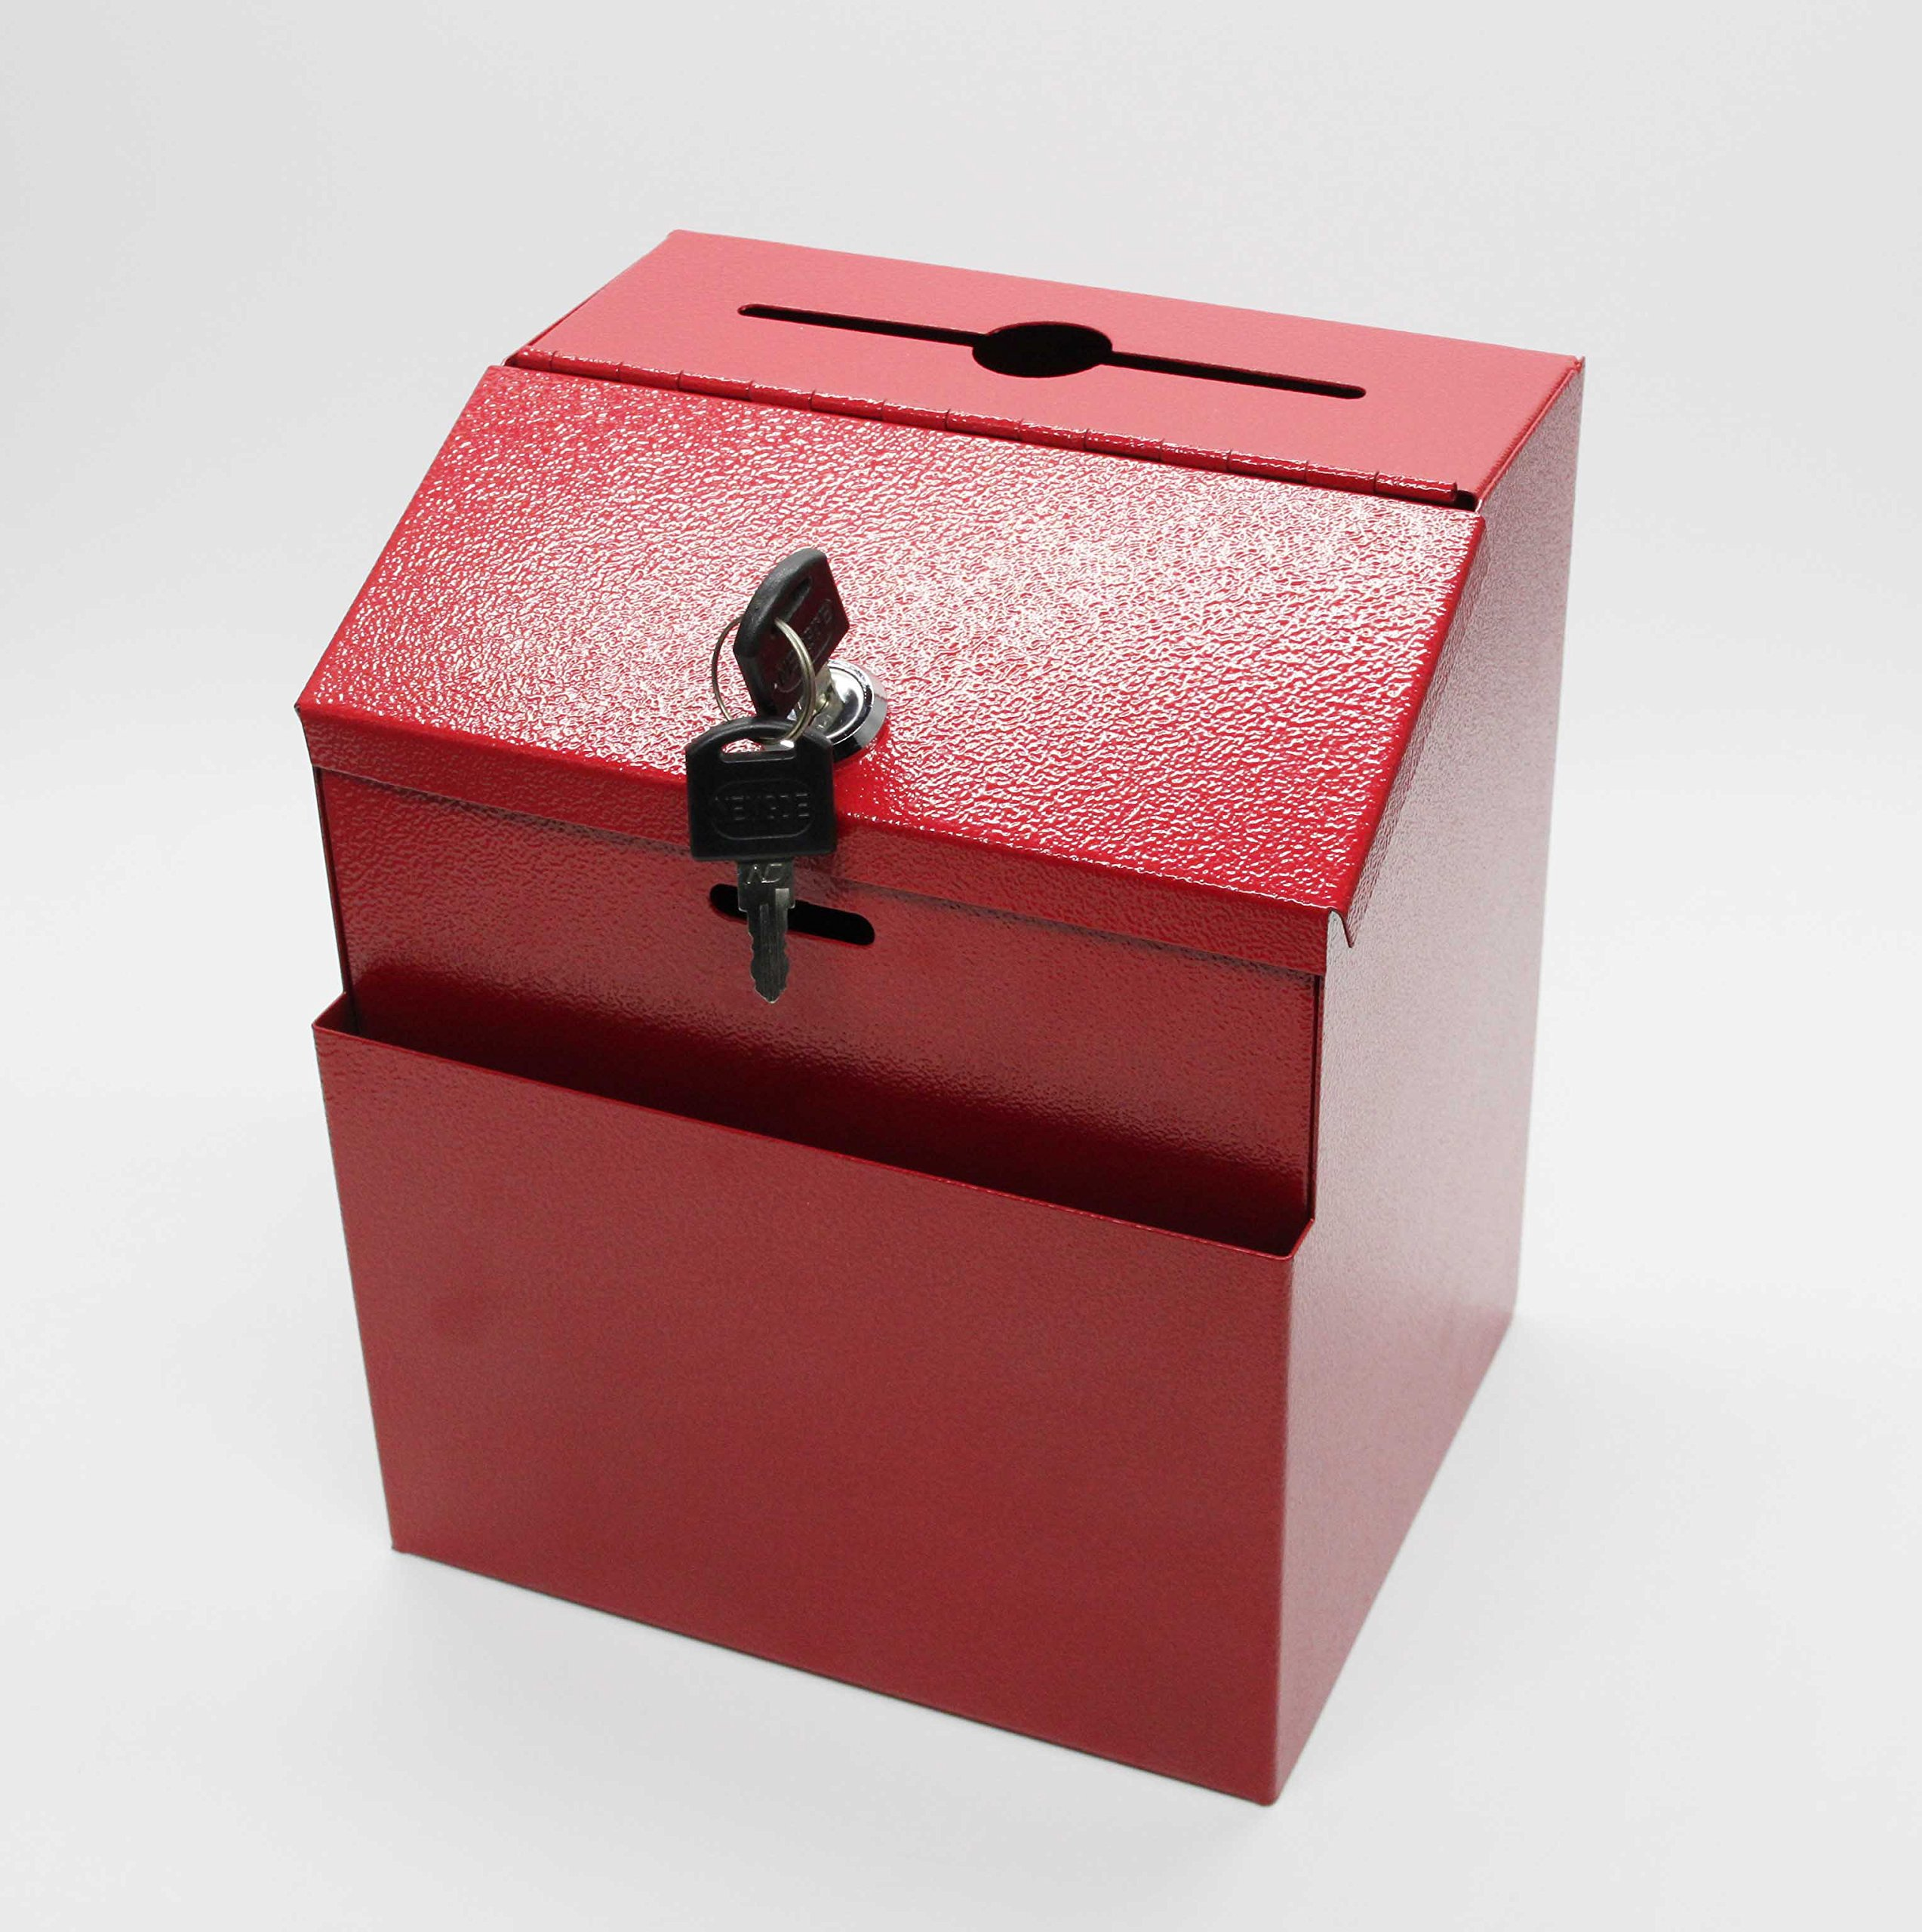 FixtureDisplays Metal Donation Suggestion Key Drop Box Express Checkout Comments sales lead box 11118-RED